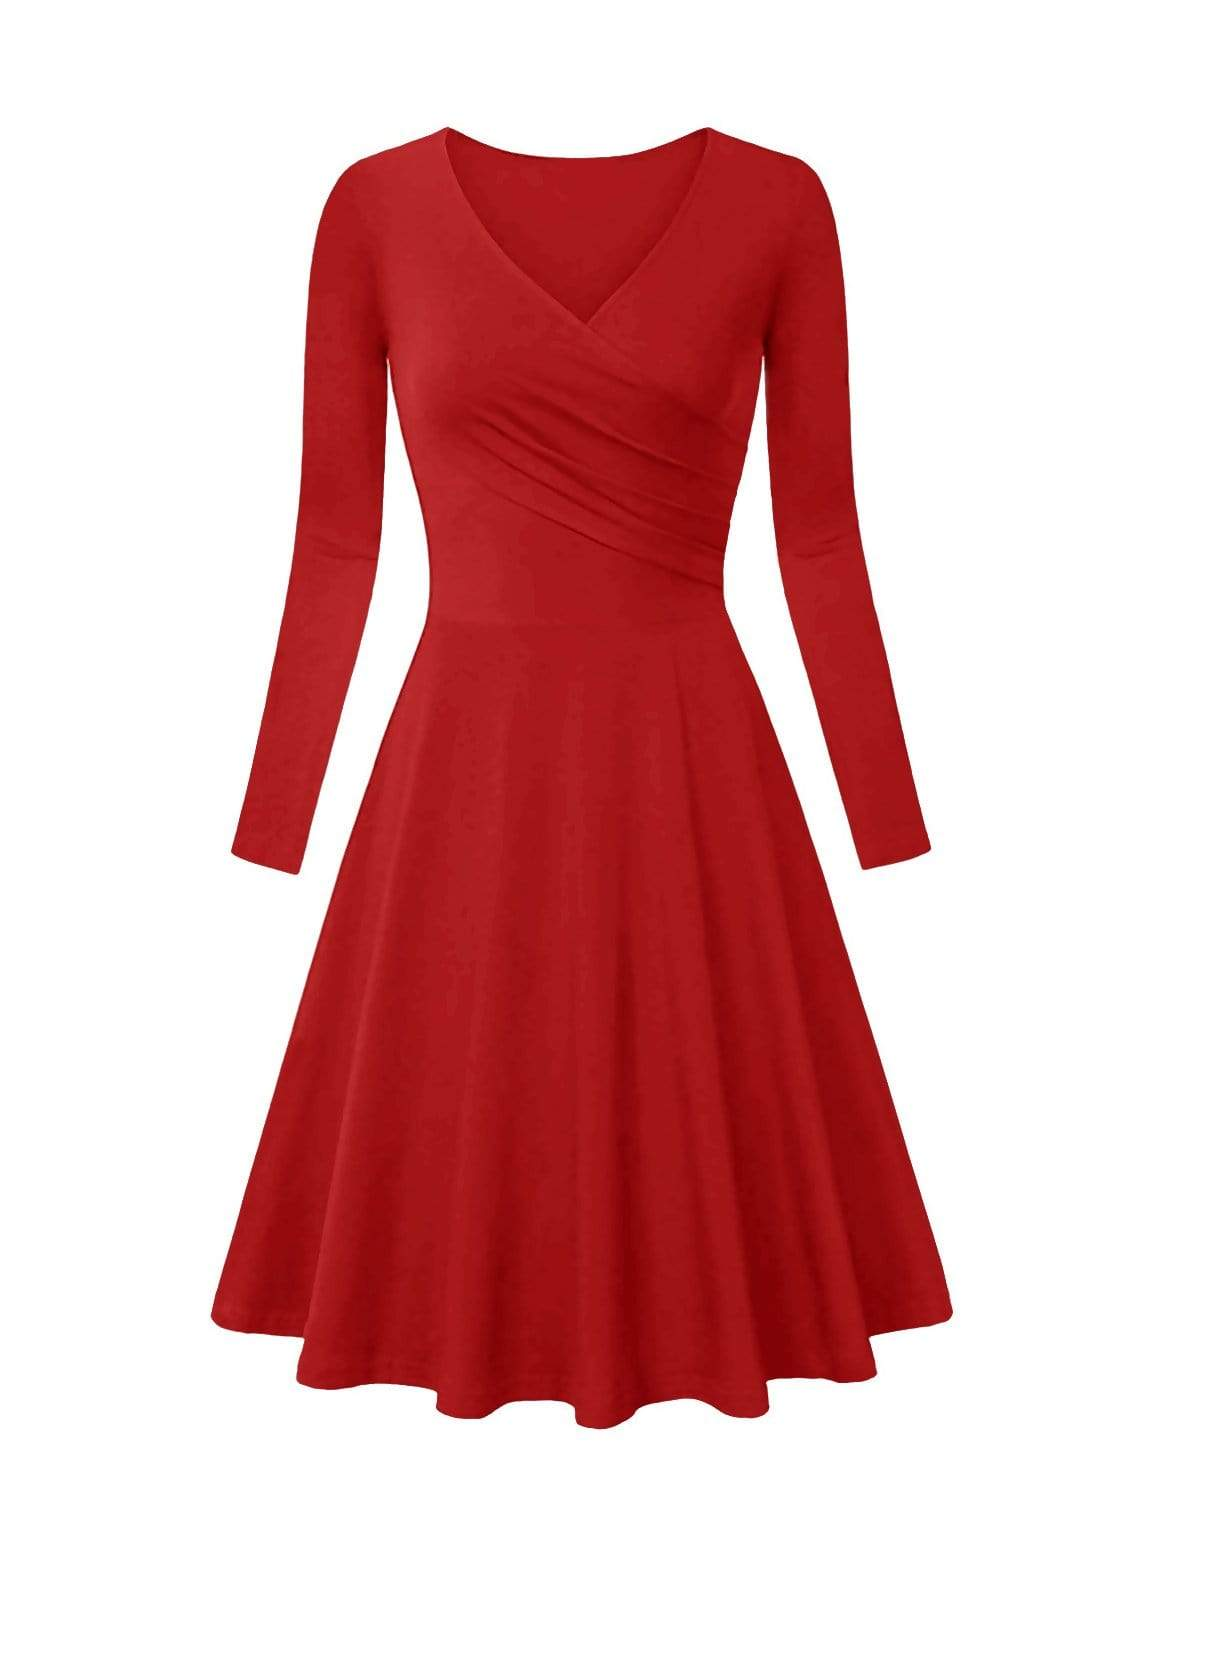 DAILYHAUTE Women's dress RED / S Haute Edition Women's V-Neck Long Sleeve Skater Dress